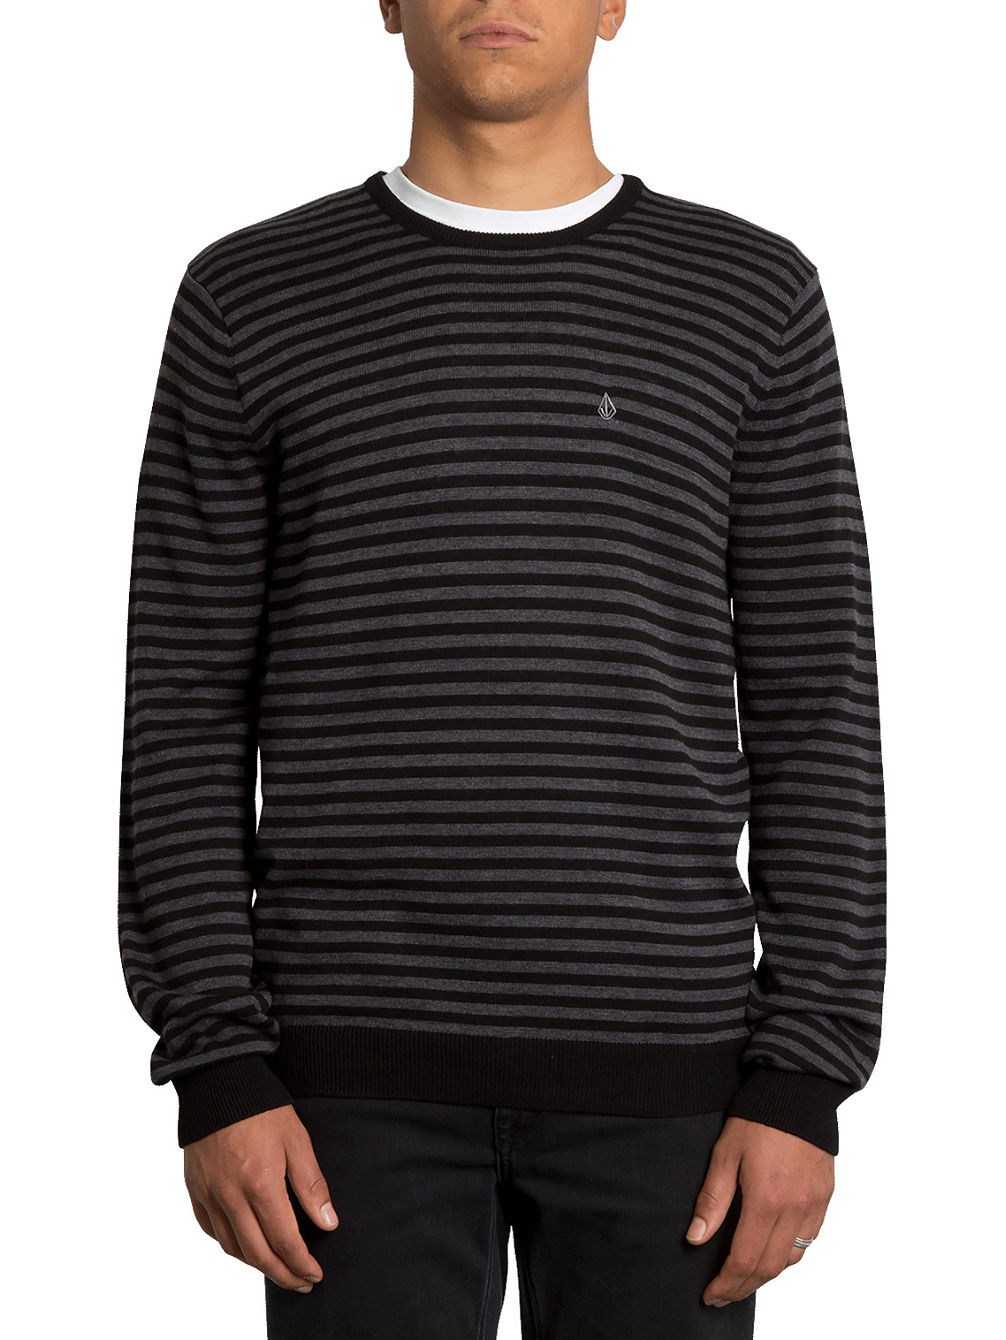 Uperstand Stripe Pullover